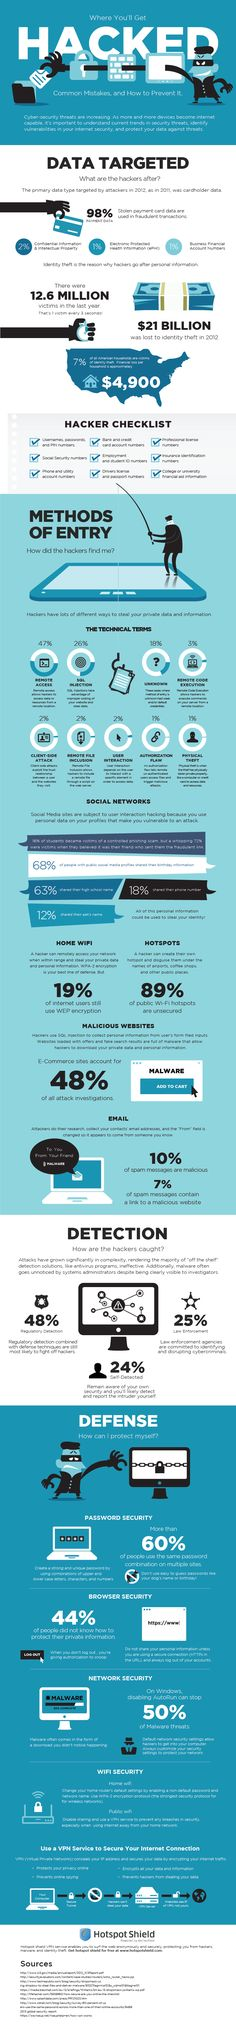 How To Hacker-Proof Your Life #infographic